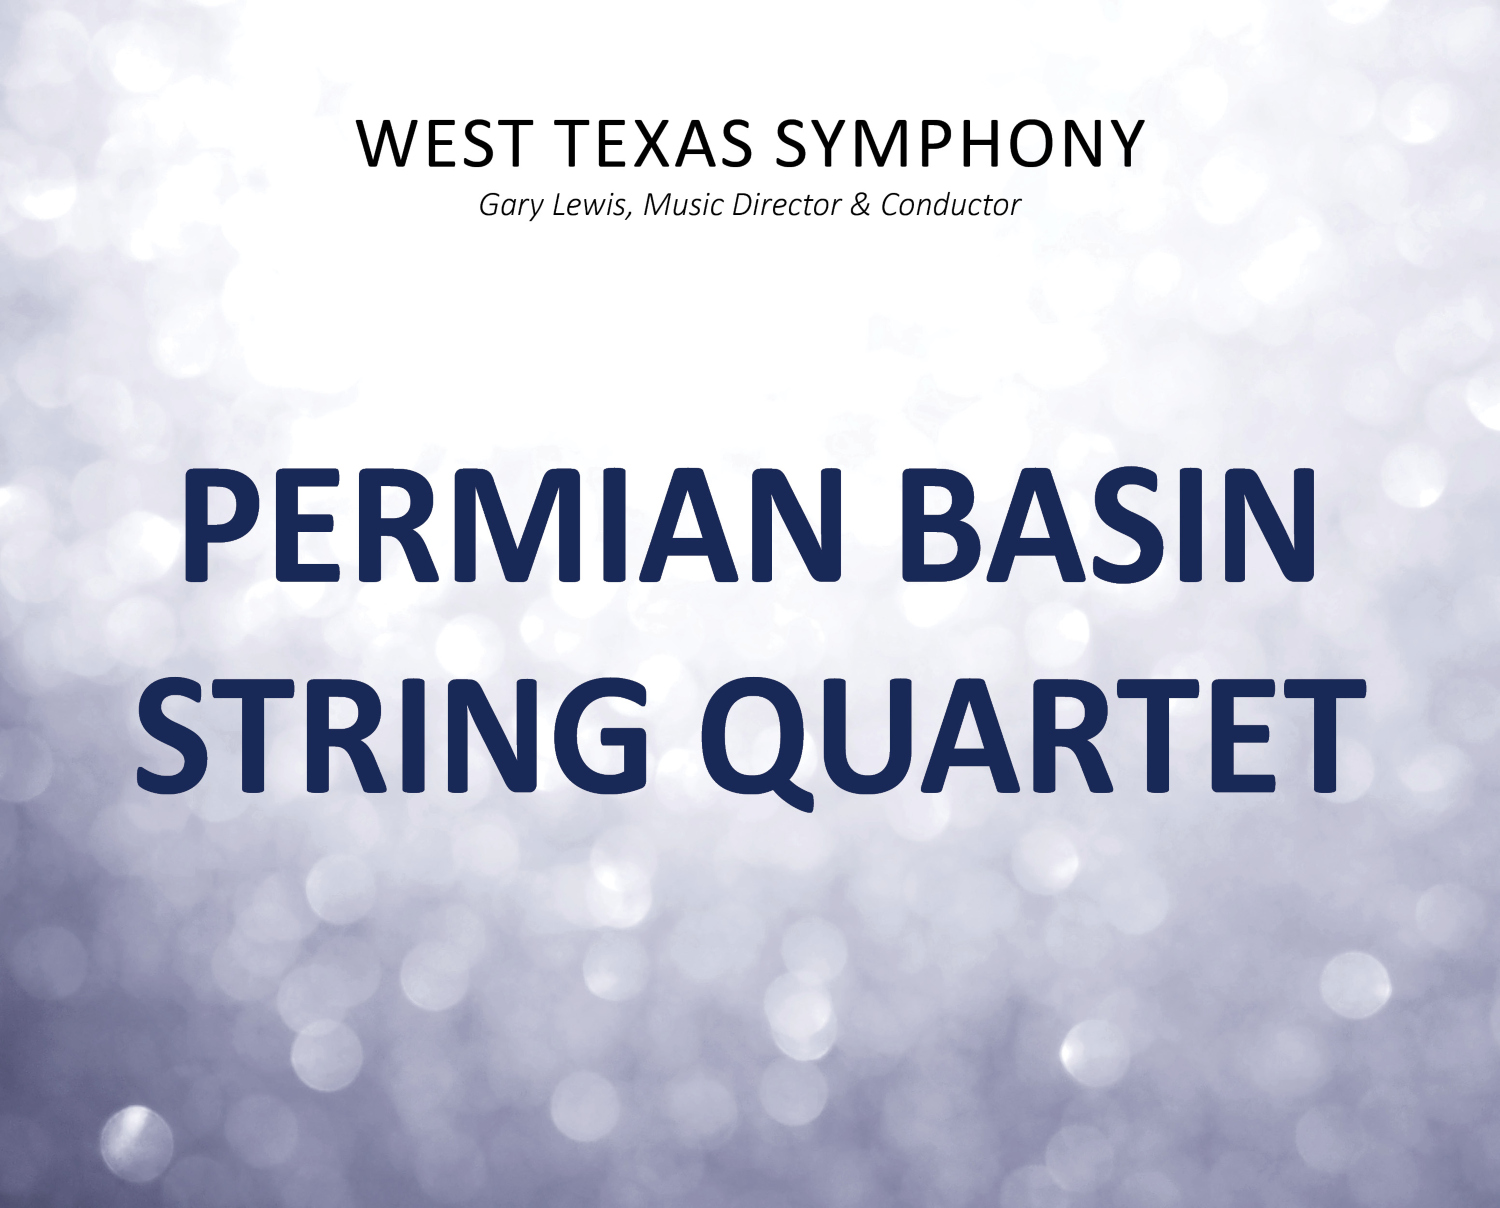 Image for STRING-A-BRATION (MOSC PERMIAN BASIN STRINGS)